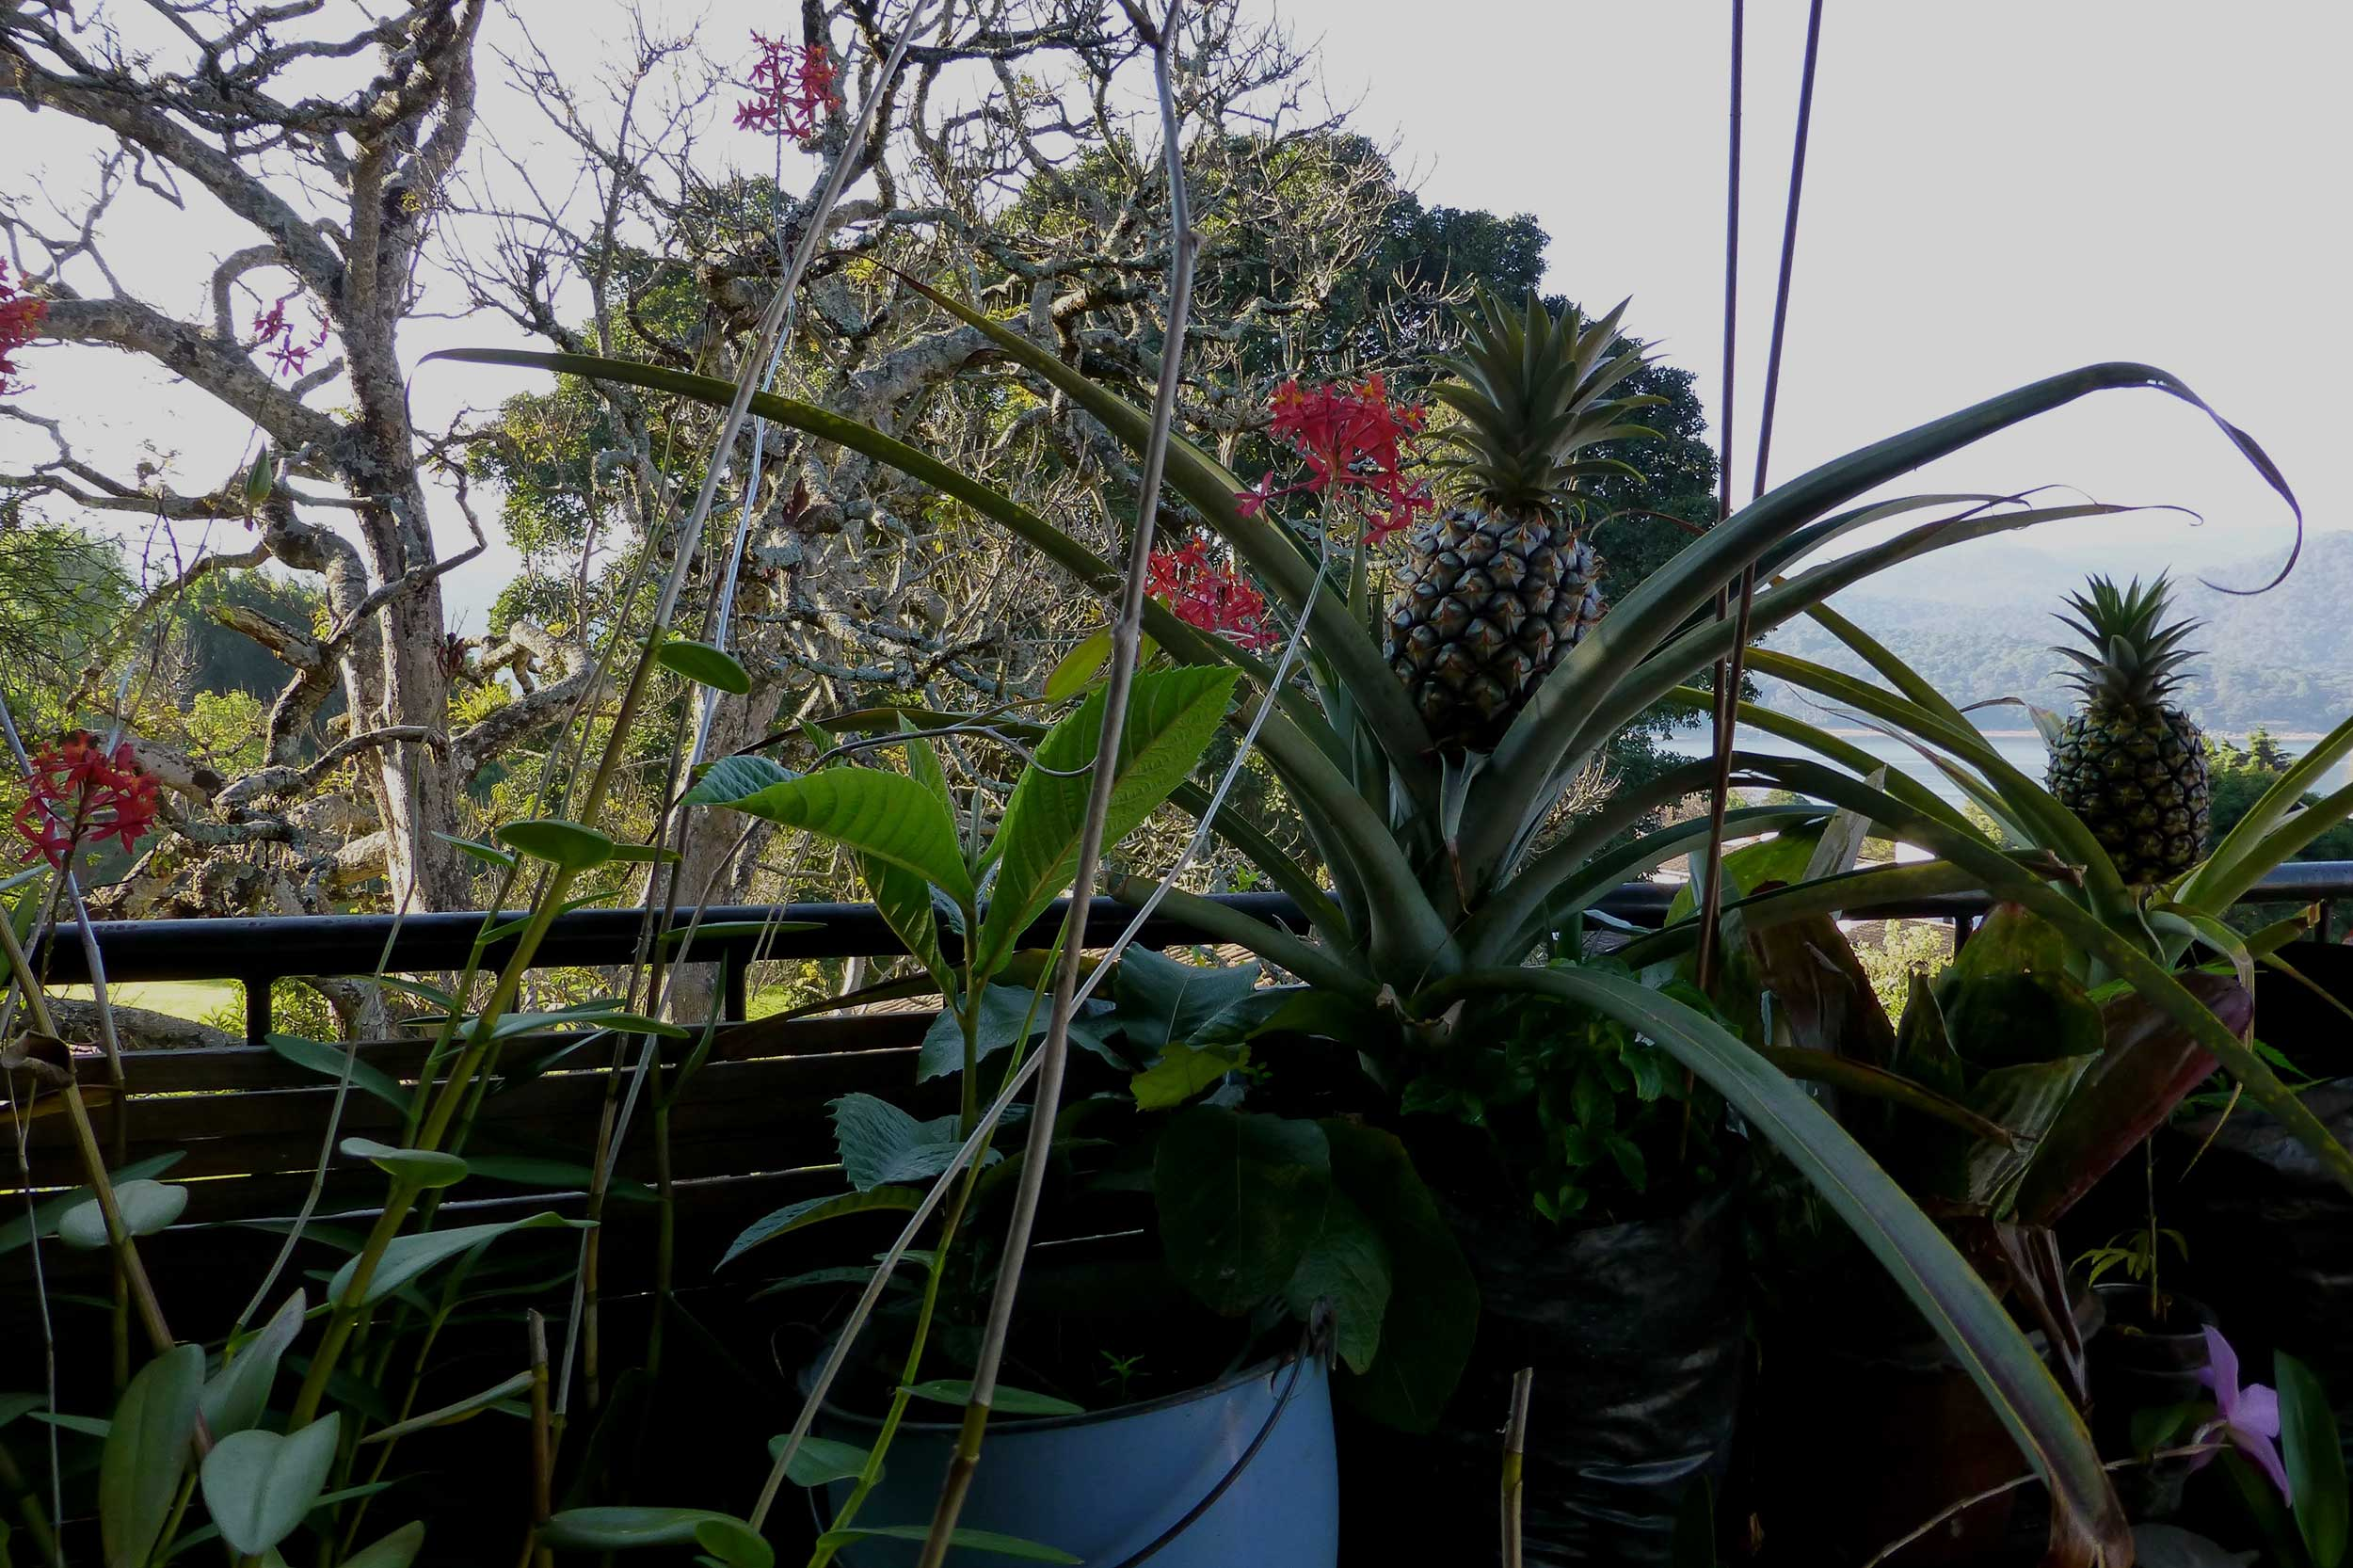 Paraglide-New-England-Trips-Valle-de-Bravo-Mexico-Gallery-House-Plants.jpg